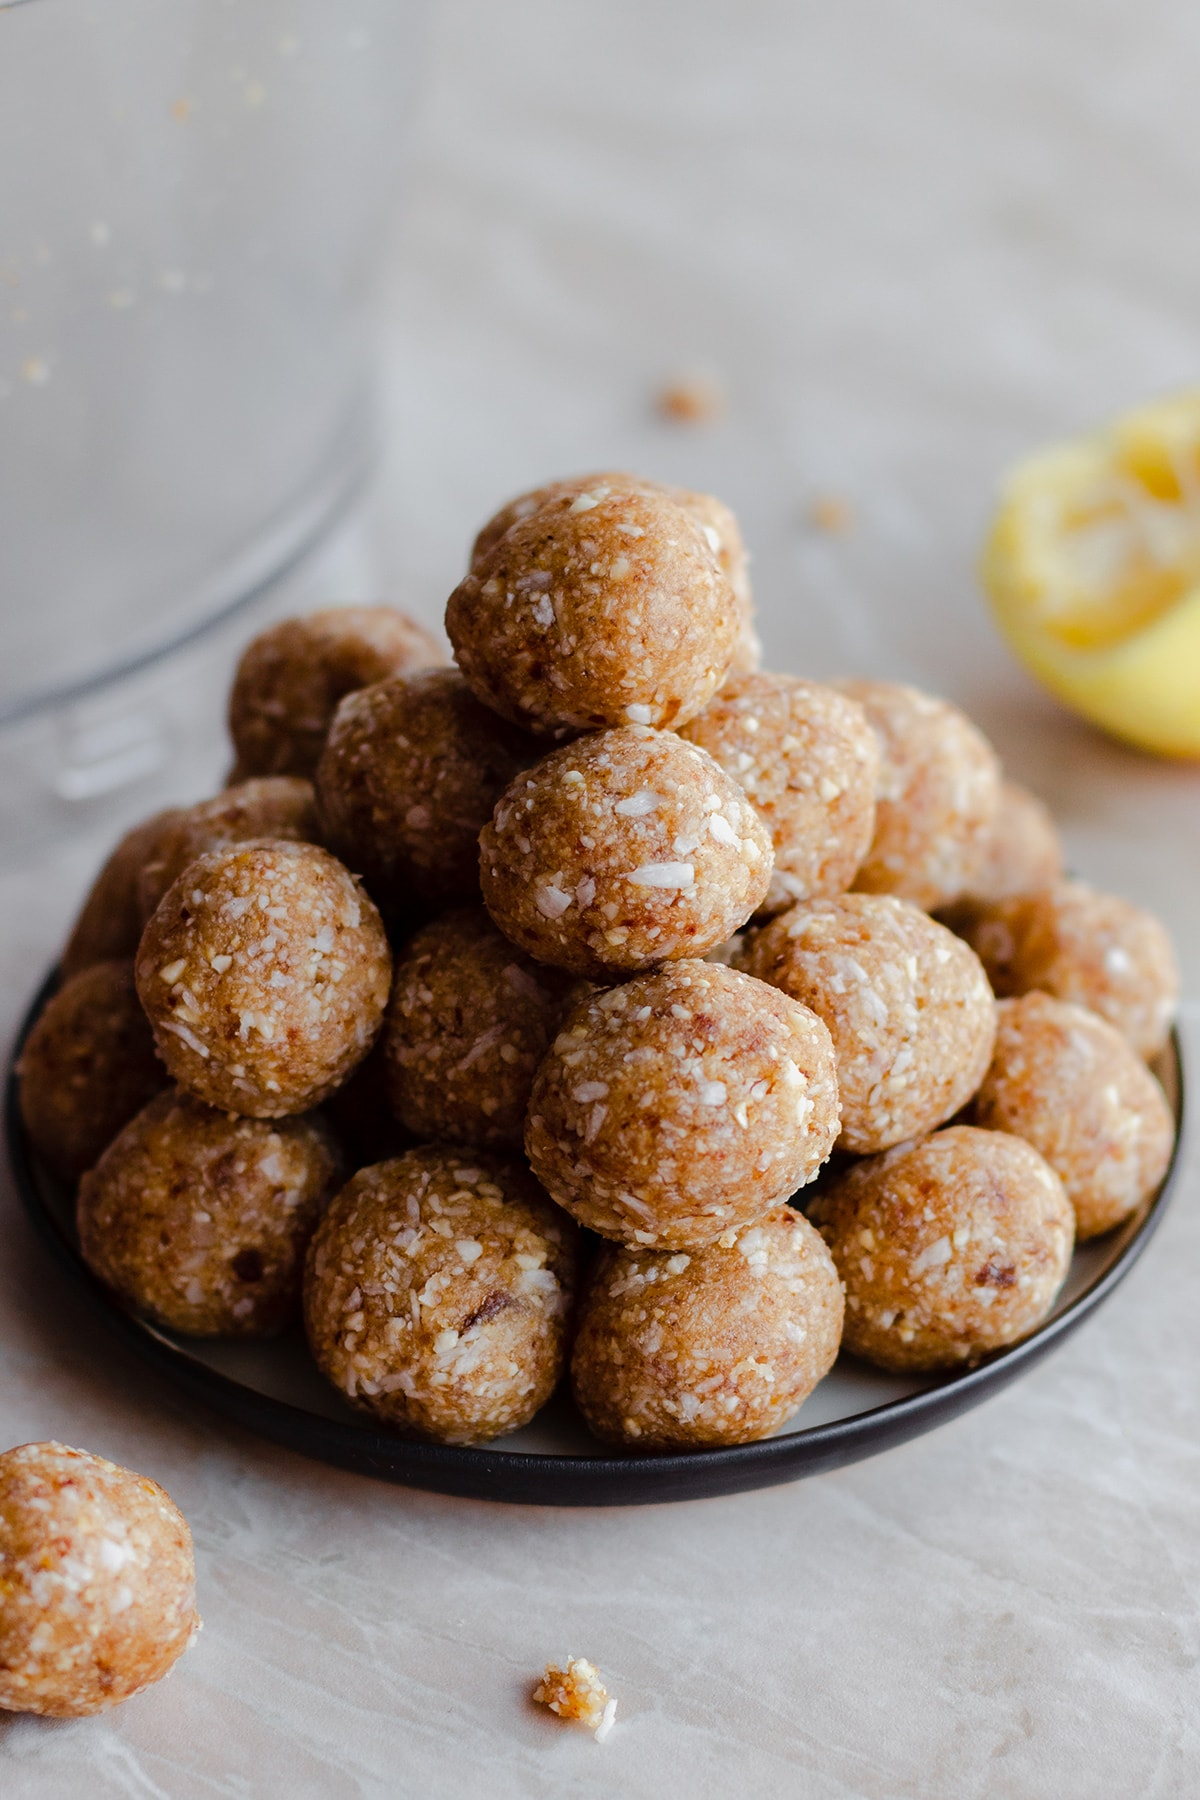 A photo of Zesty Lemon Coconut Energy Balls stacked up on a plate. Light marble background. Lemon in the background on the right side.